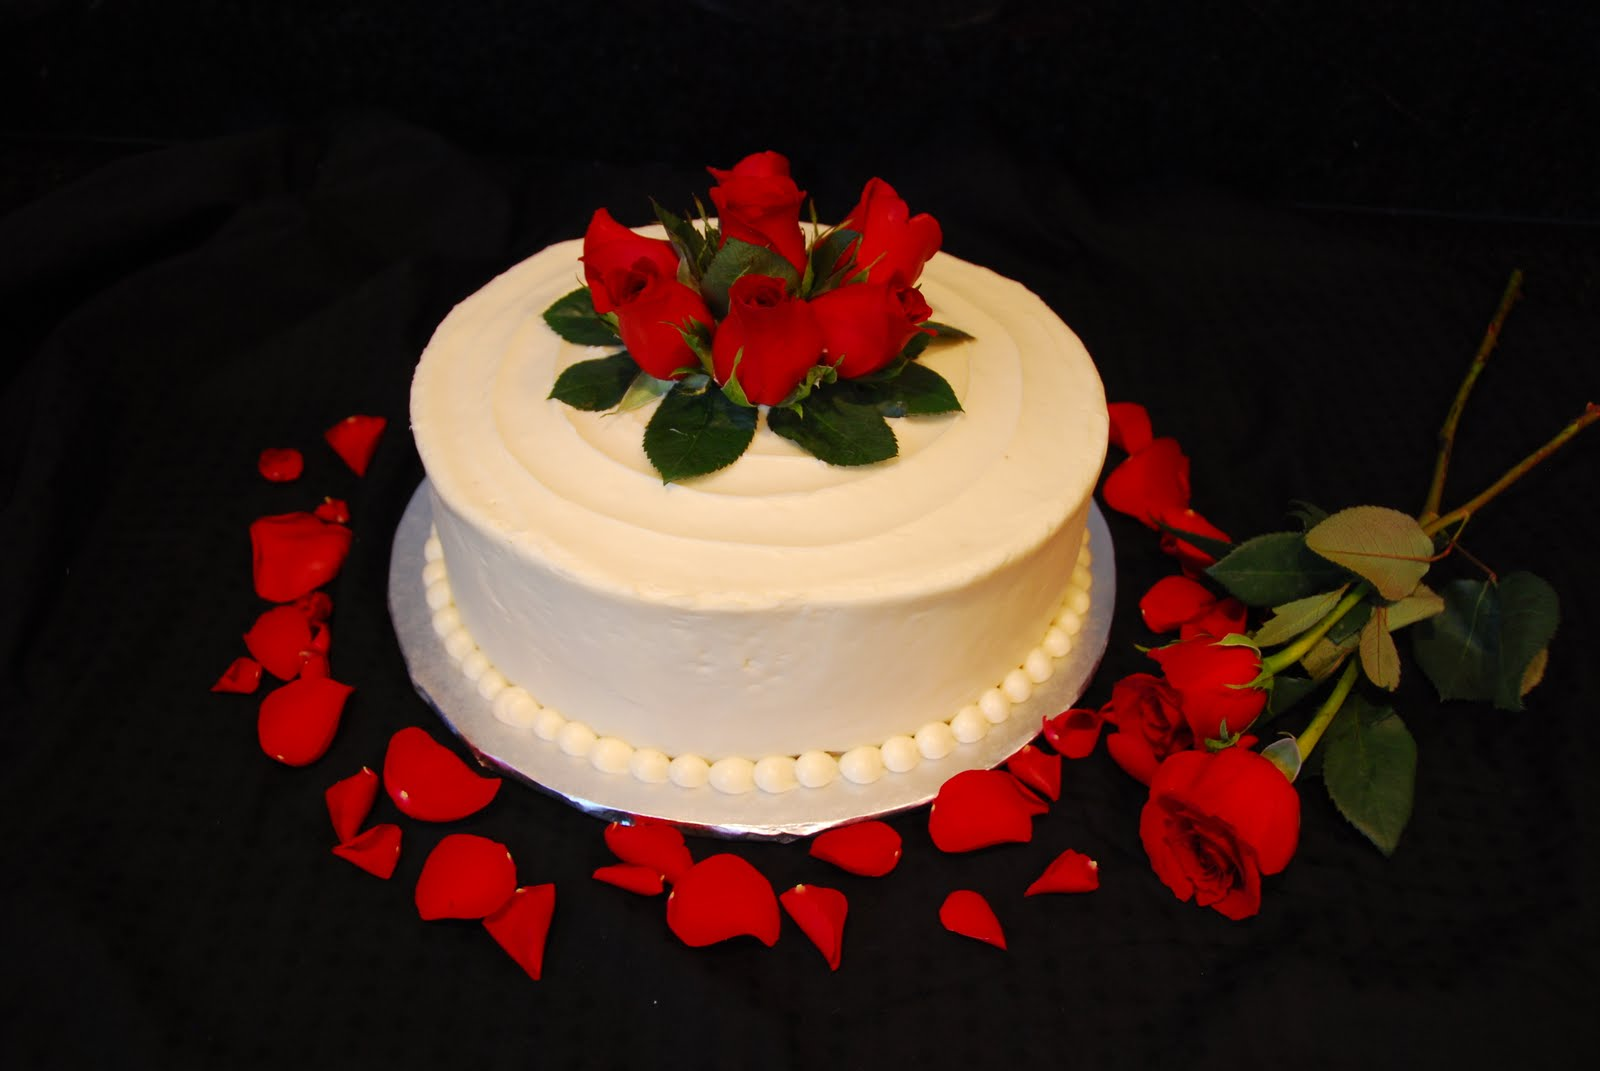 Red flowers cake decoration high resolution wallpaper